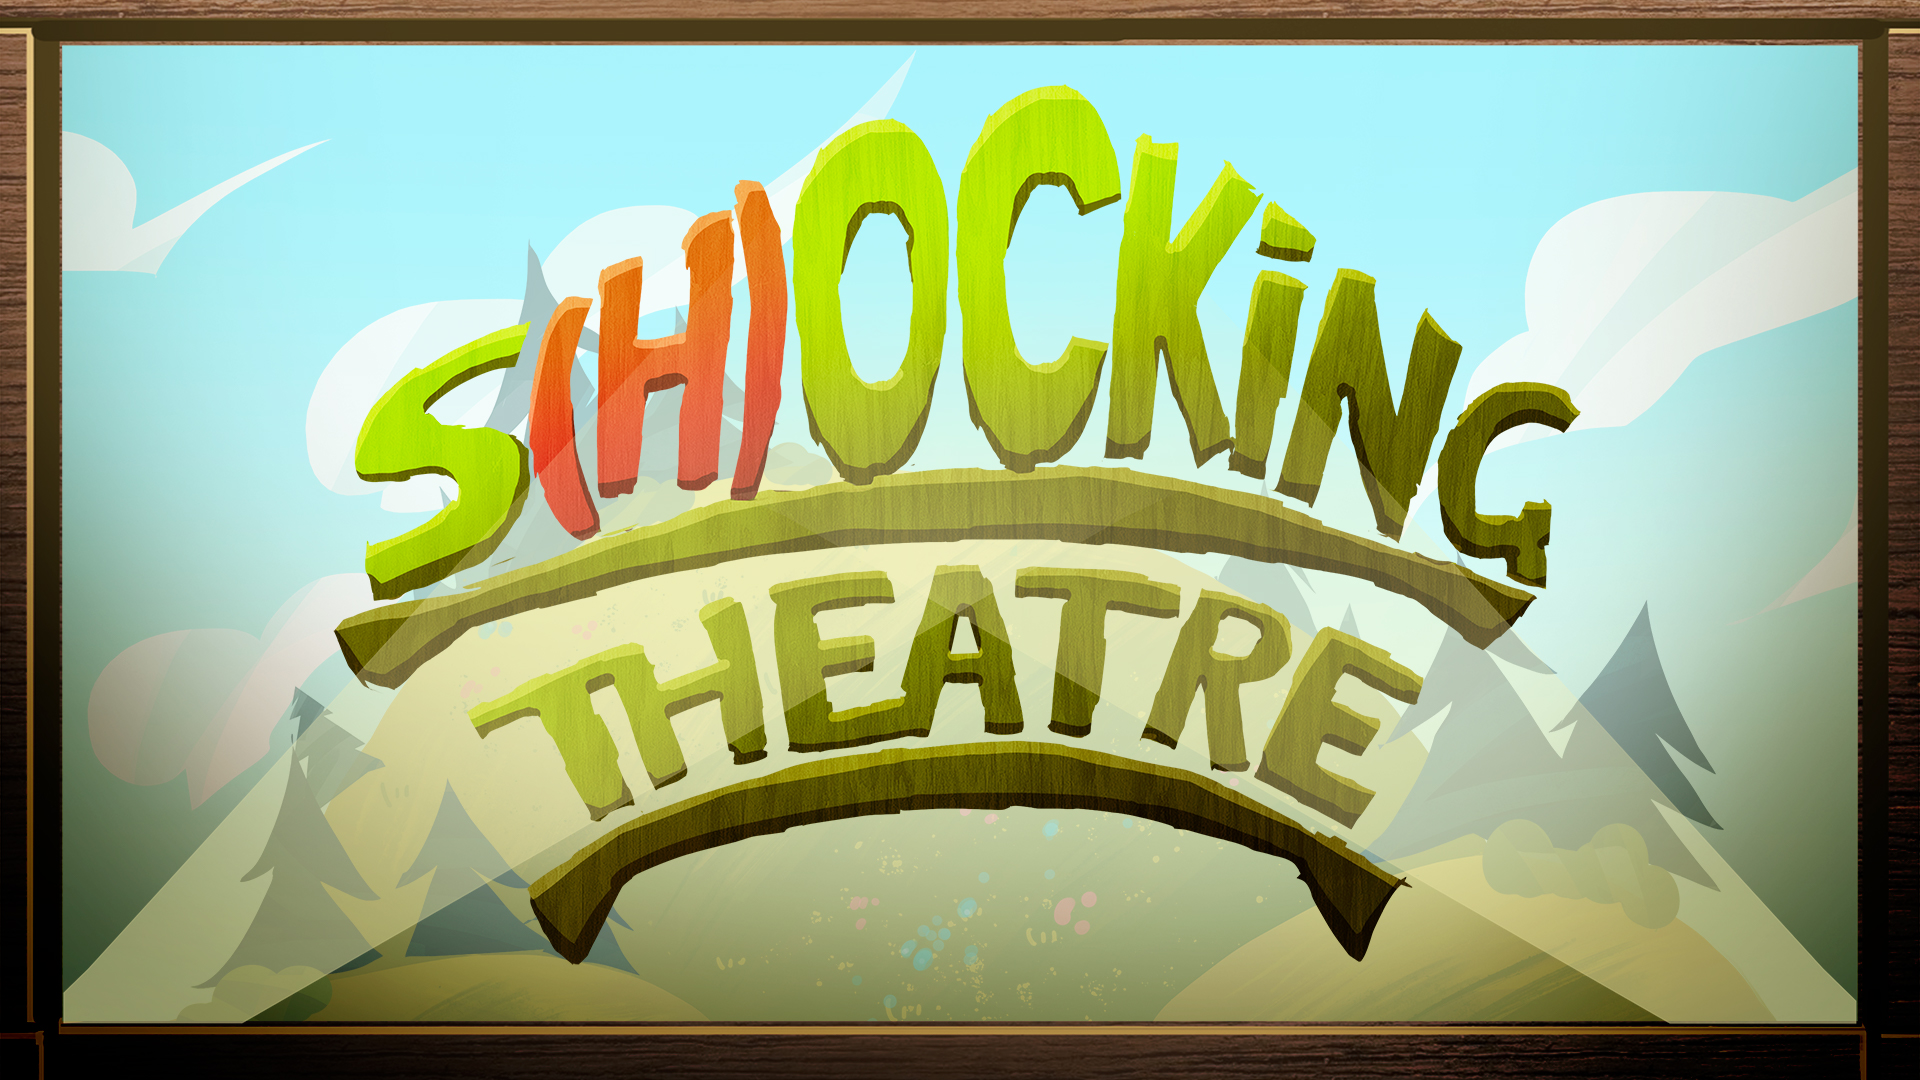 S(H)OCKING THEATRE